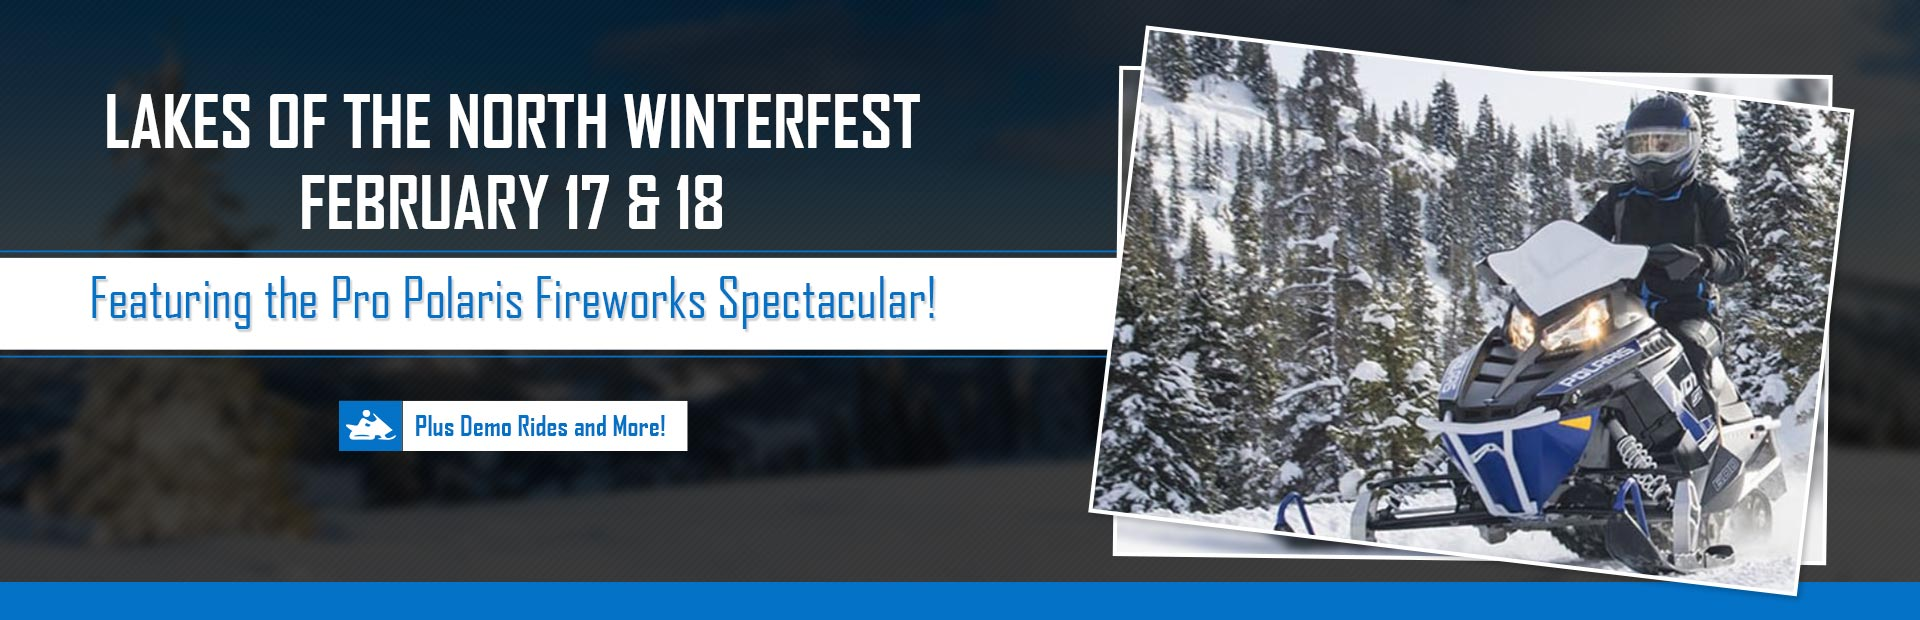 Join us February 17 & 18 for the Lakes of the North Winterfest! Click here for details.